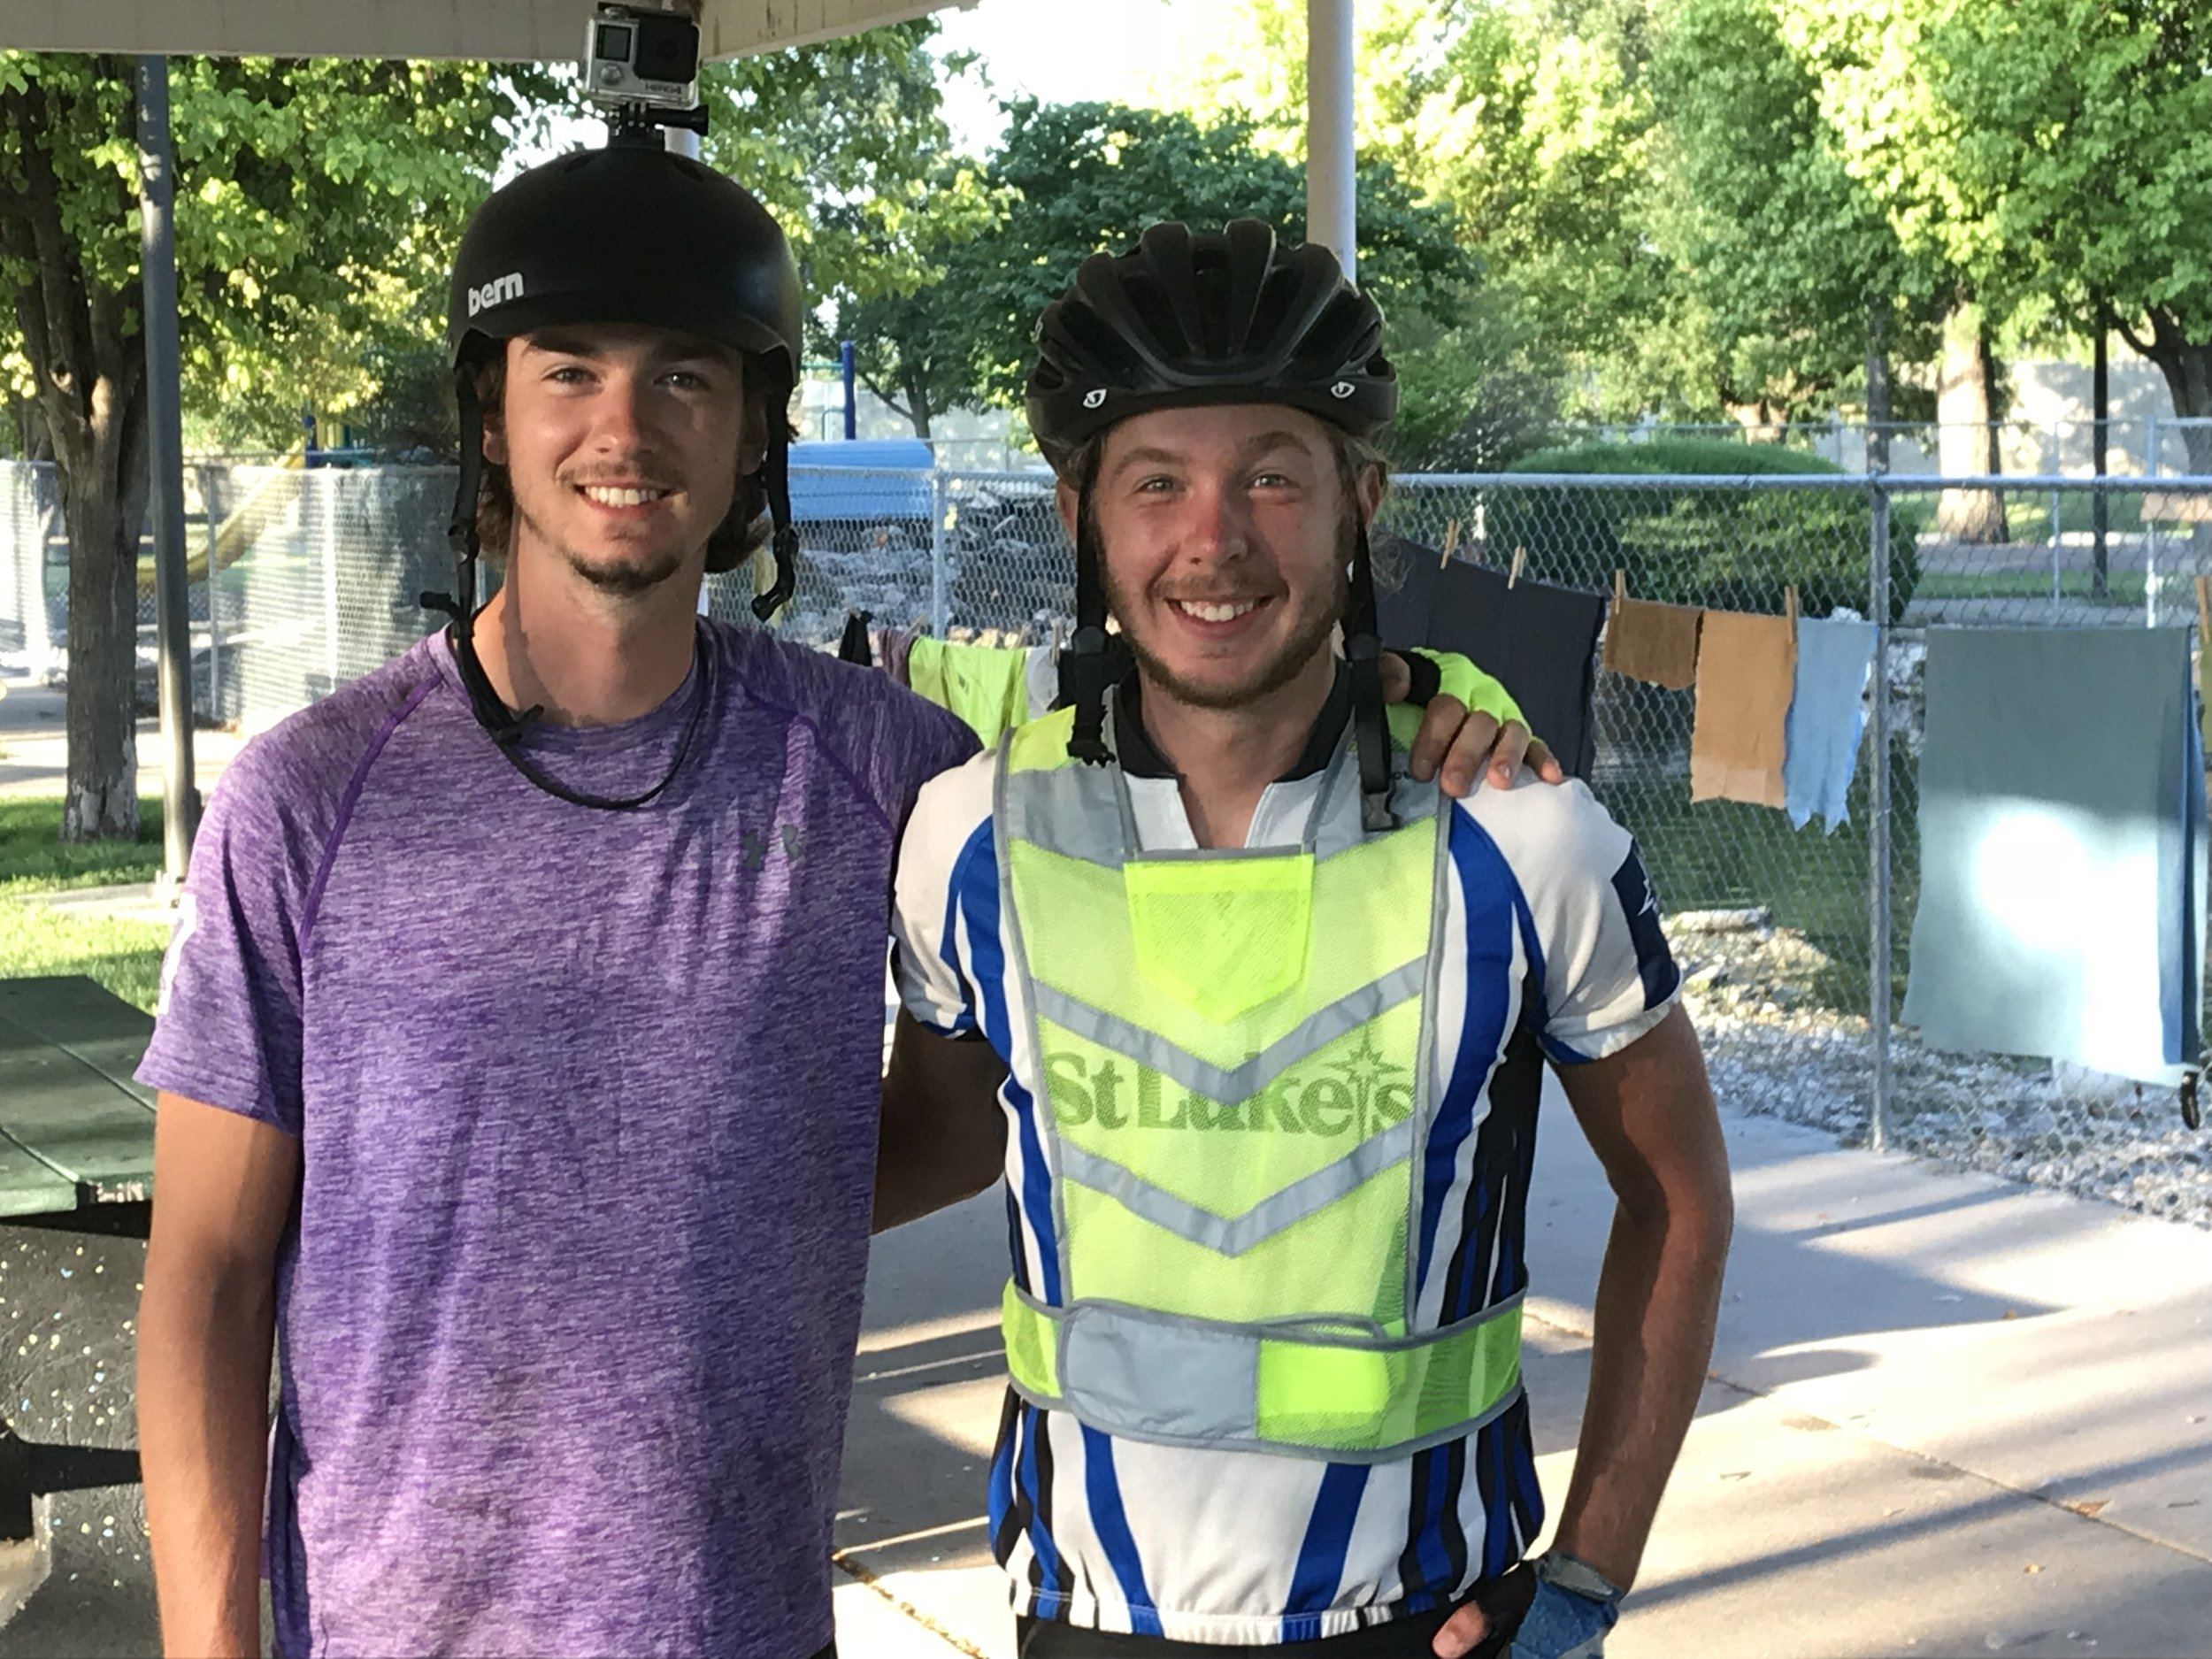 These two recent college graduates, Nick and Mitchell, are traveling the TransAmerica Trail, too, going west just as we are. It was a pleasure making their acquaintance and camping with them in Larned, KS!